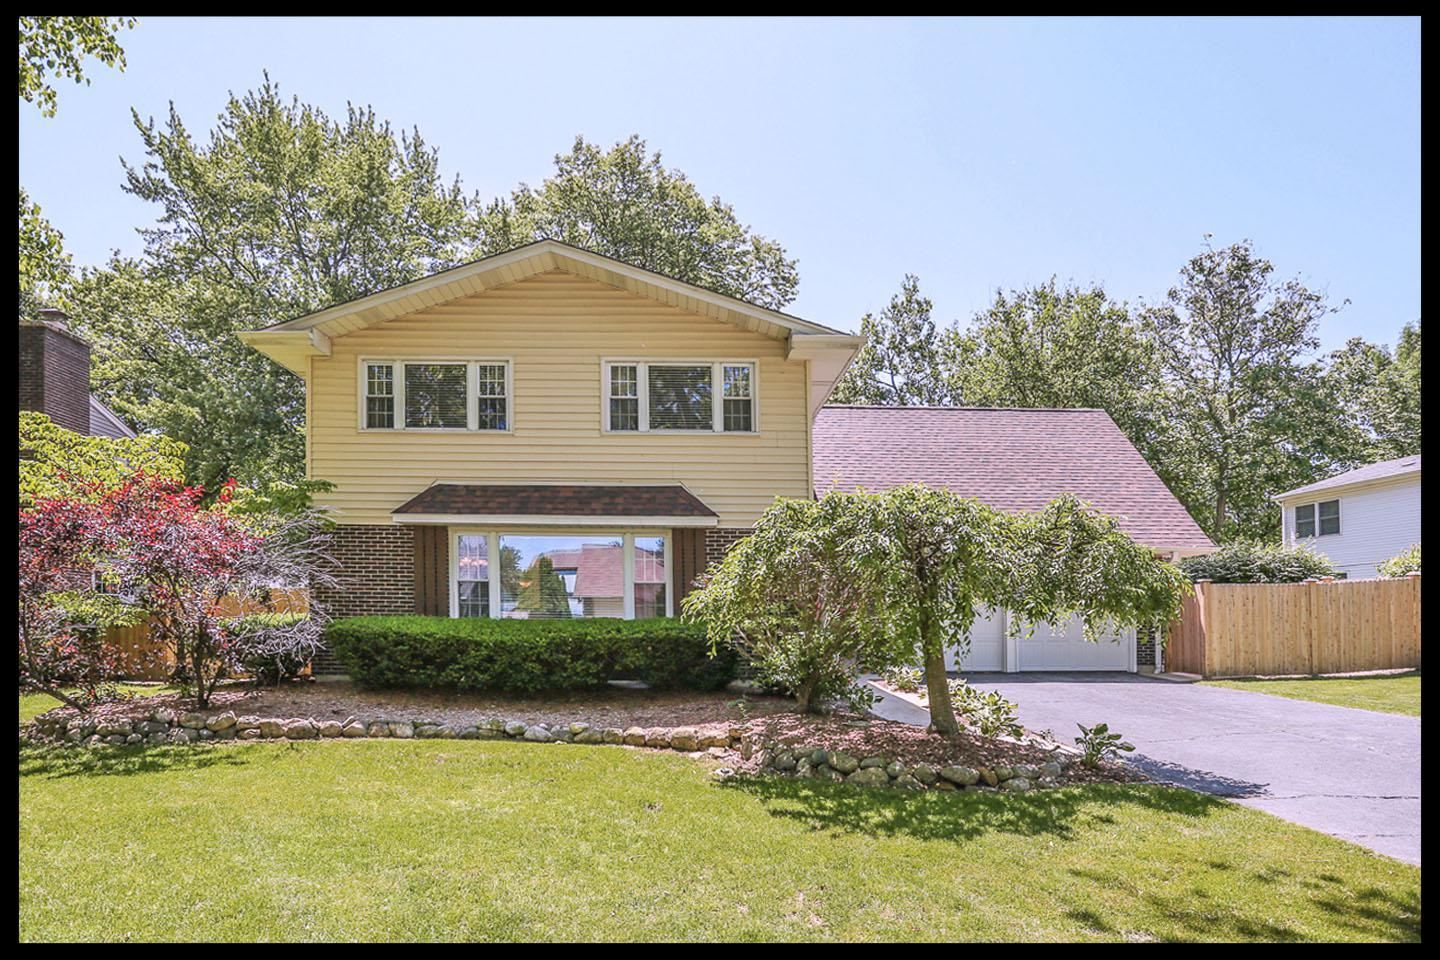 2016 Vermont Street, Rolling Meadows, IL 60008 - #: 10744854